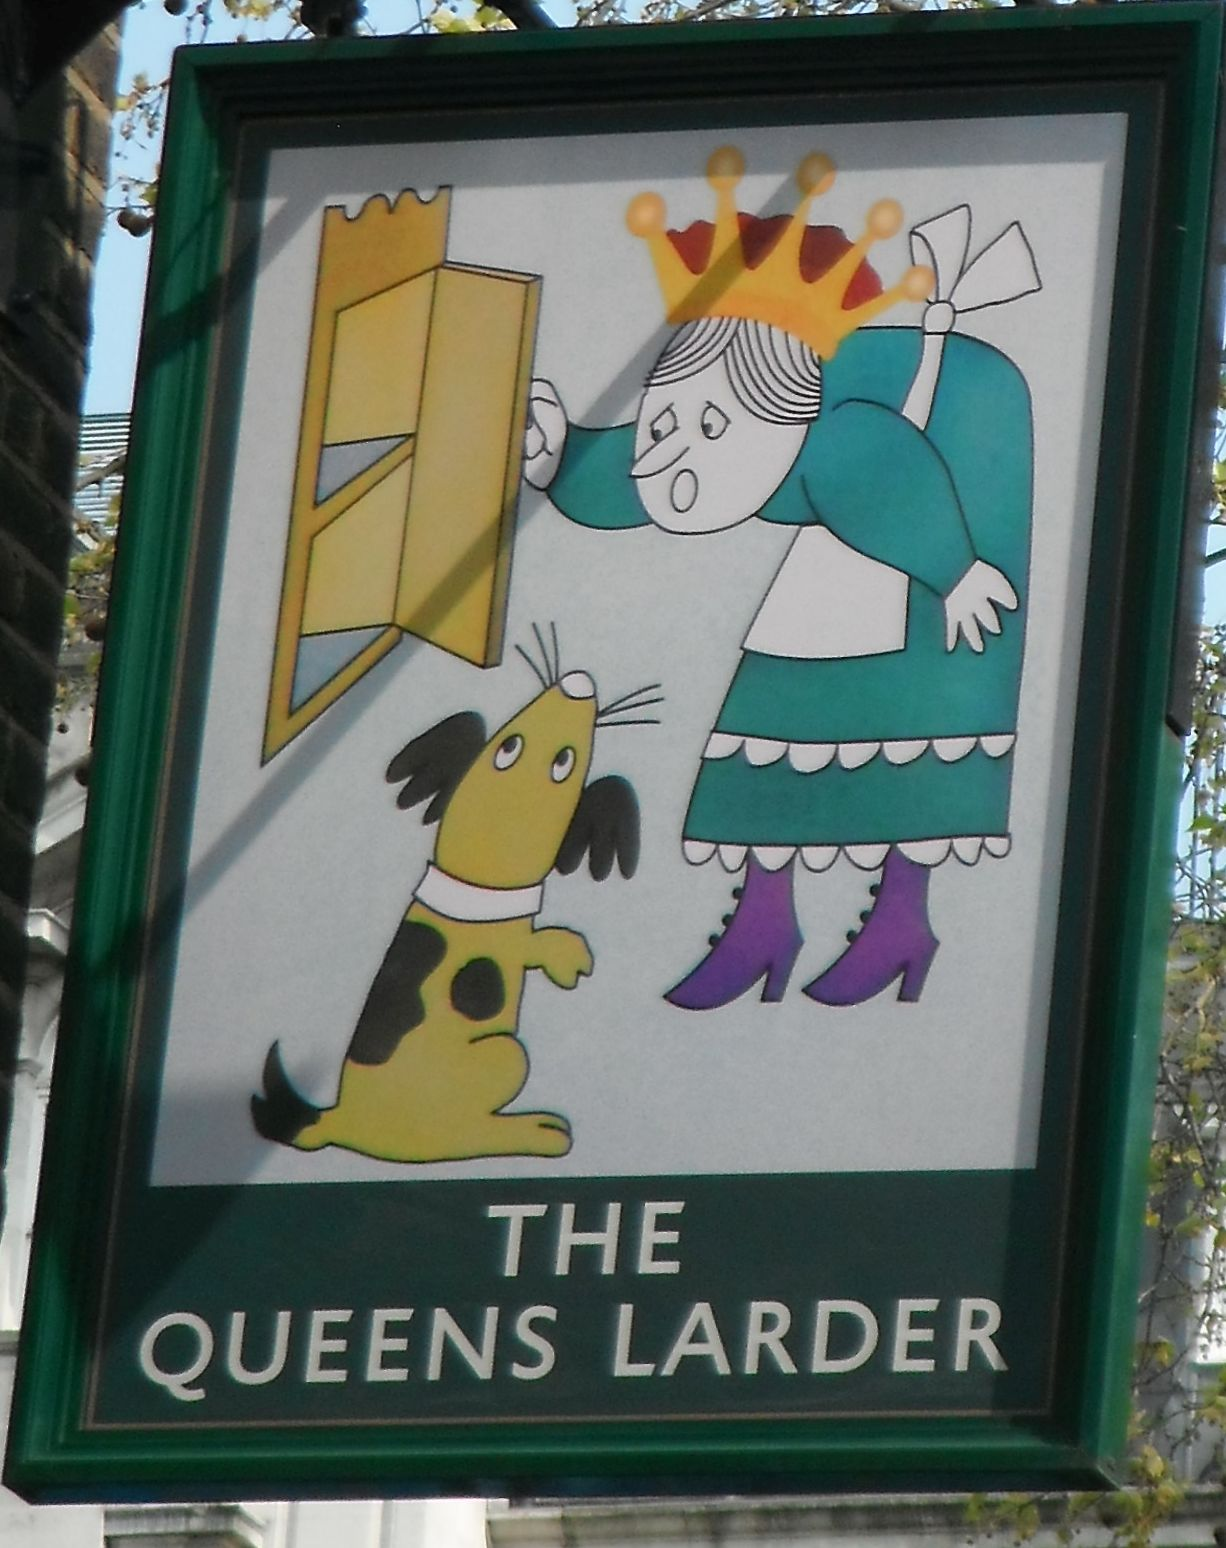 Photo taken by me – pub sign for  The Queens Larder Queen Square London